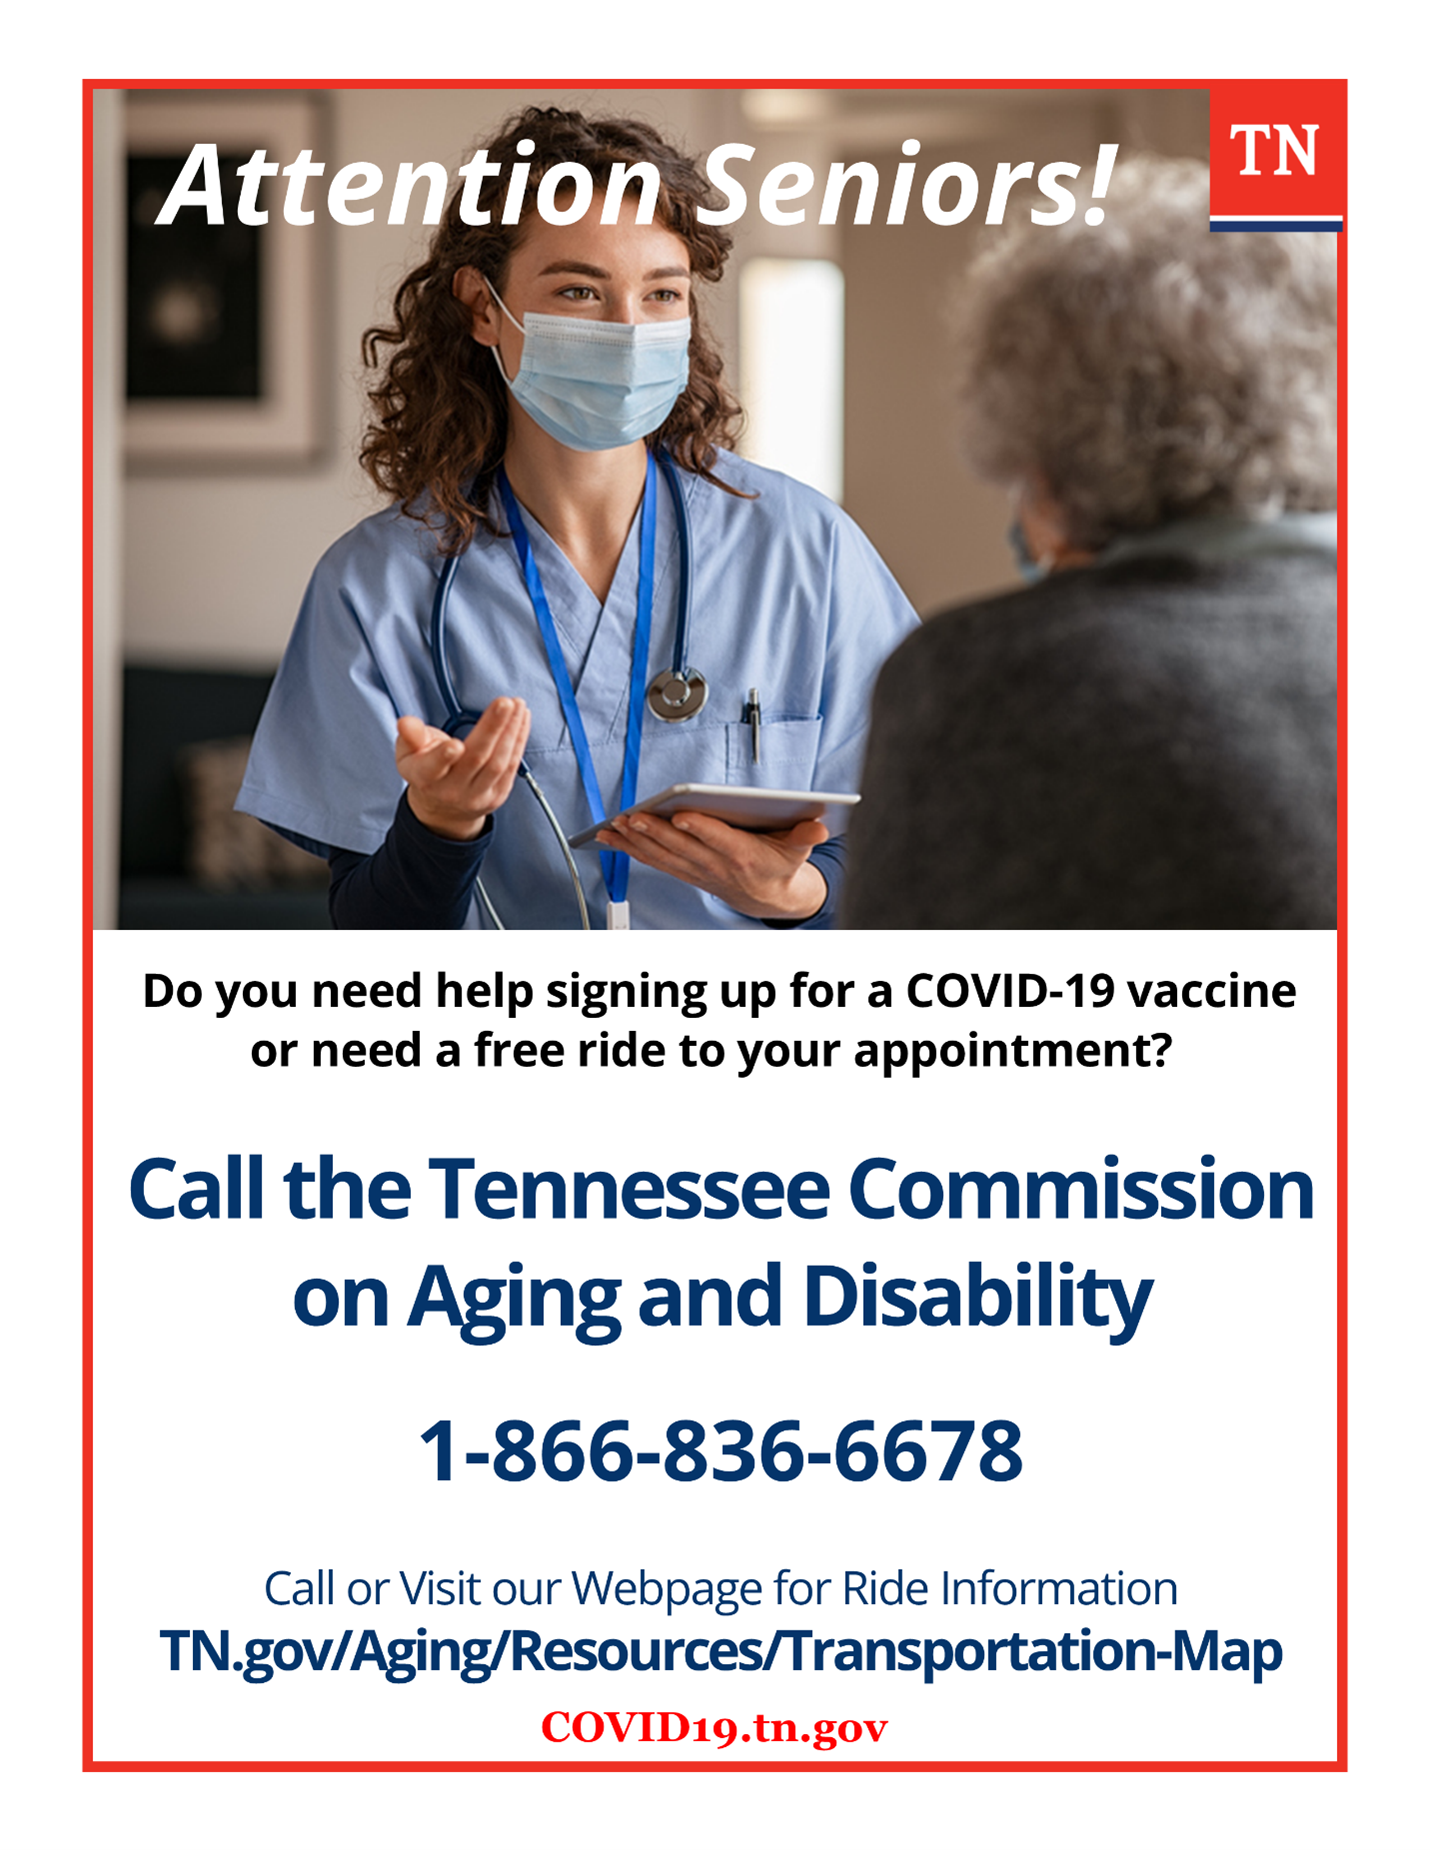 tennessee help for seniors looking for a covid vaccine